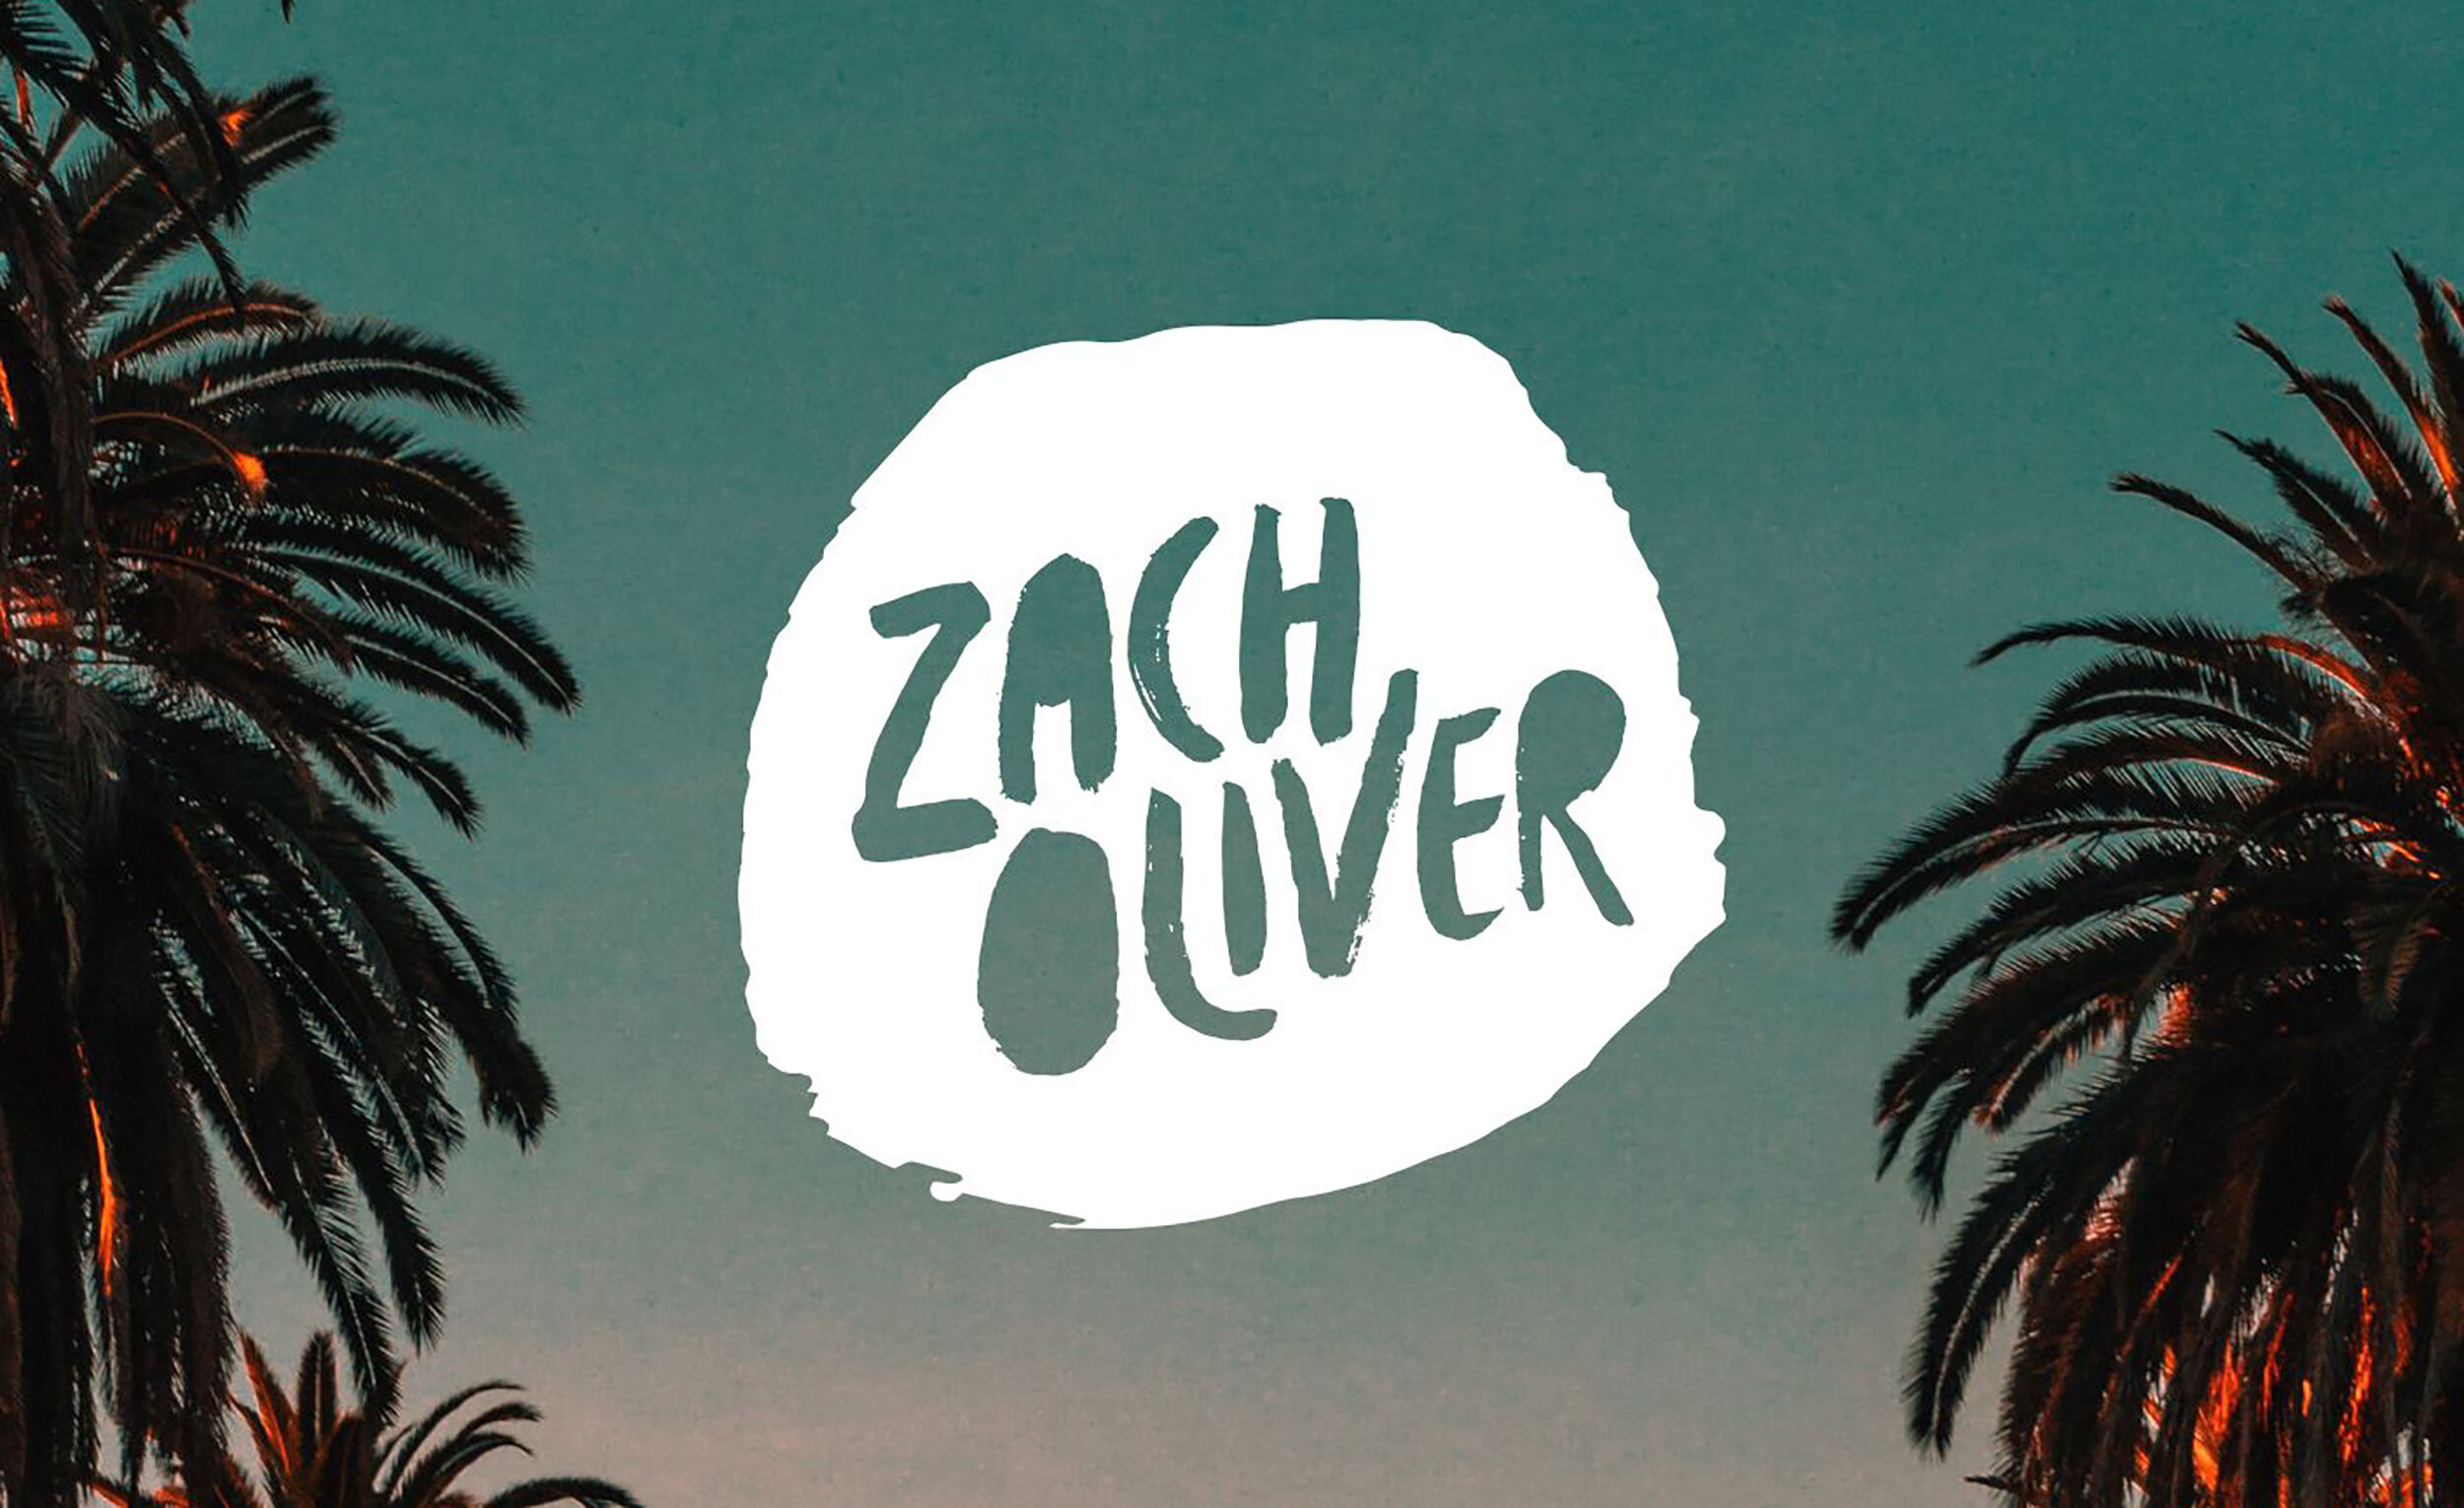 www.zacholiver.com  A bastard born British boy, from Harlow in Essex England, moved to Toronto, Ontario Canada. His journey as an acoustic singer songwriter began like most skilled musicians; the sheer inspiration to create musical fusion after watching the film School Of Rock for the first time. At the nimble age of 10, he began writing songs. Little did he know that the thirst for creating music would morph into something as rich and panty wetting as the songs he writes and plays now. His goal is to share his music with you and give you something to connect with, whether it's your first cheesy love or your last soul wrenching heartbreak.